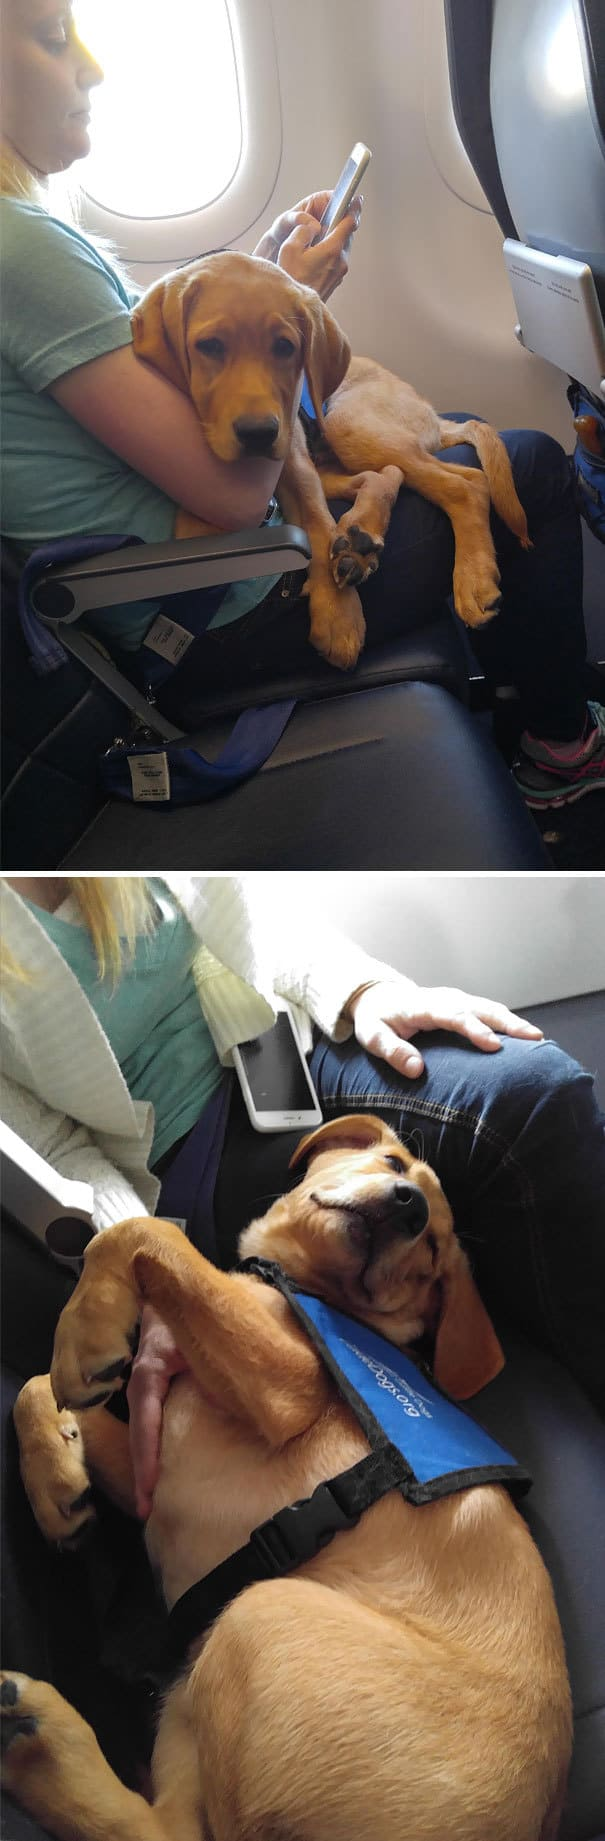 Licked, Kicked And Sniffed On Plane Flight